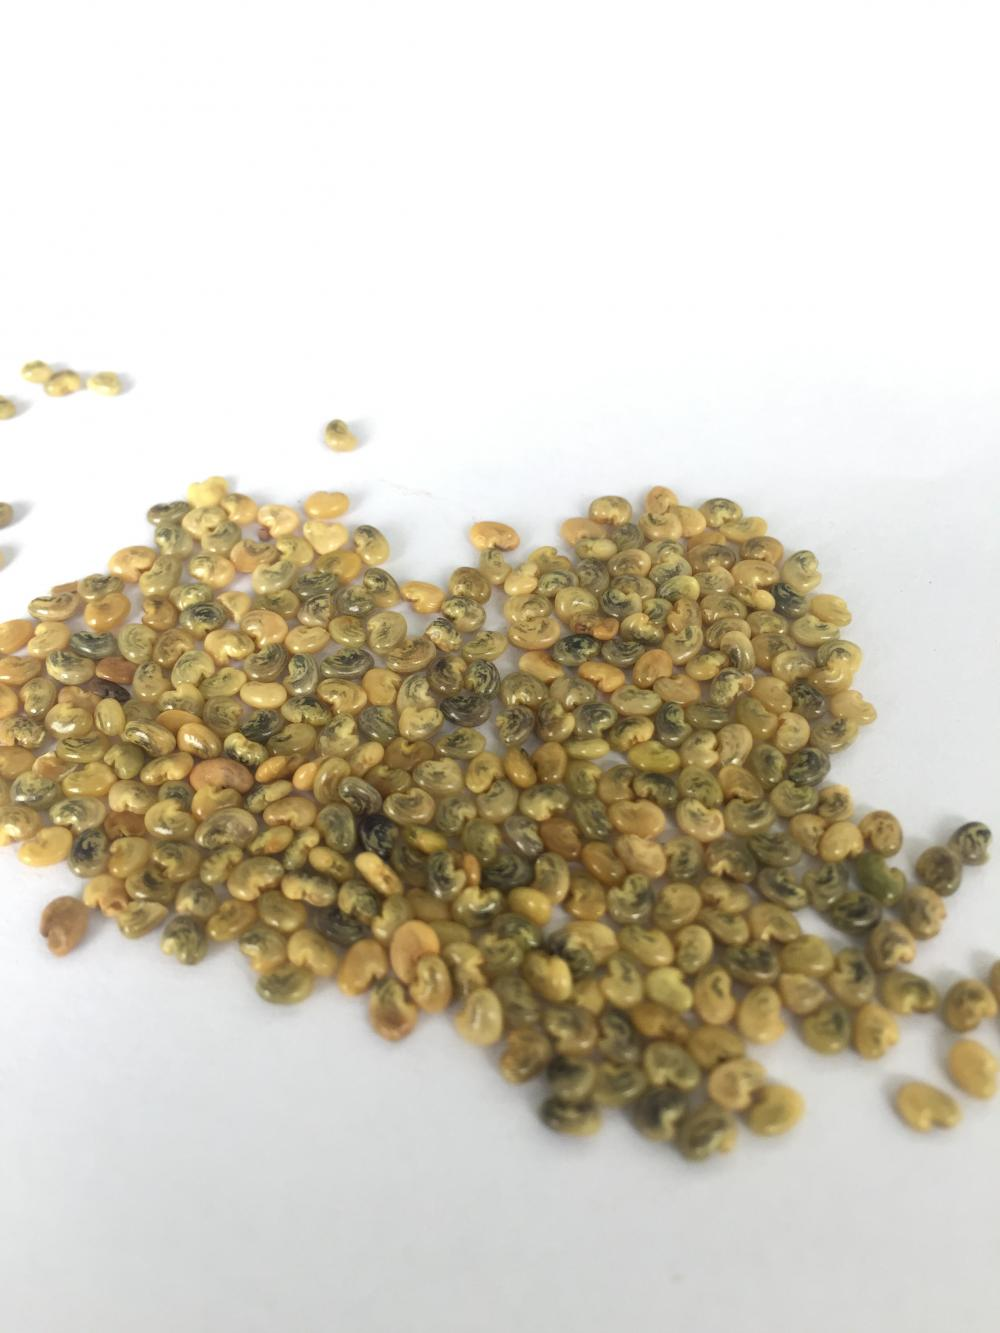 Bulk Factory Supply Crotalaria Mucronata Seeds